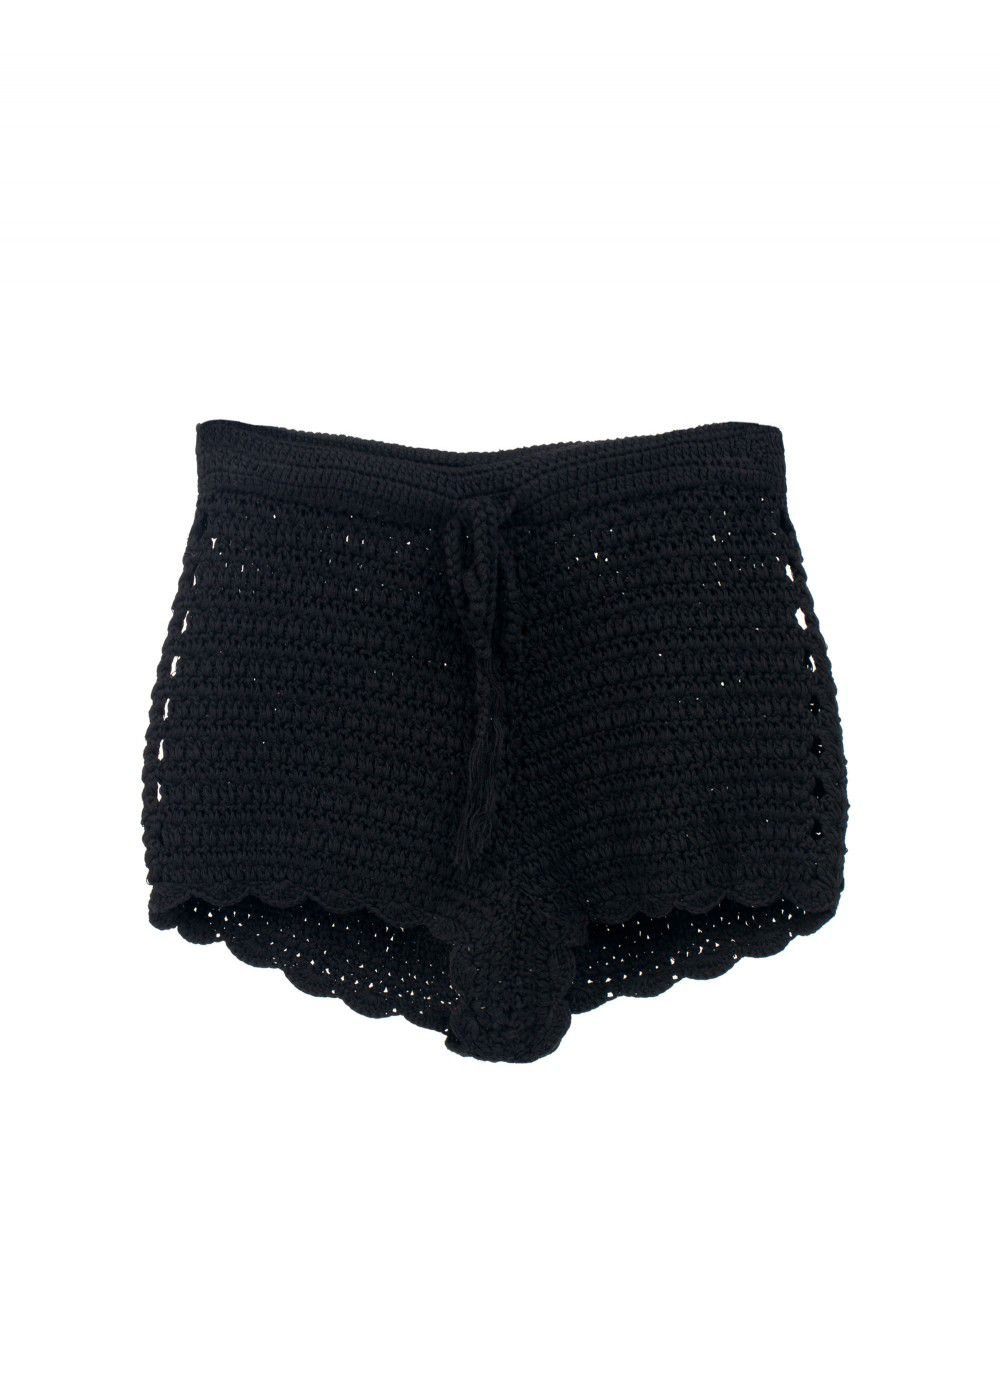 Echo 77 Bali Black Shorts